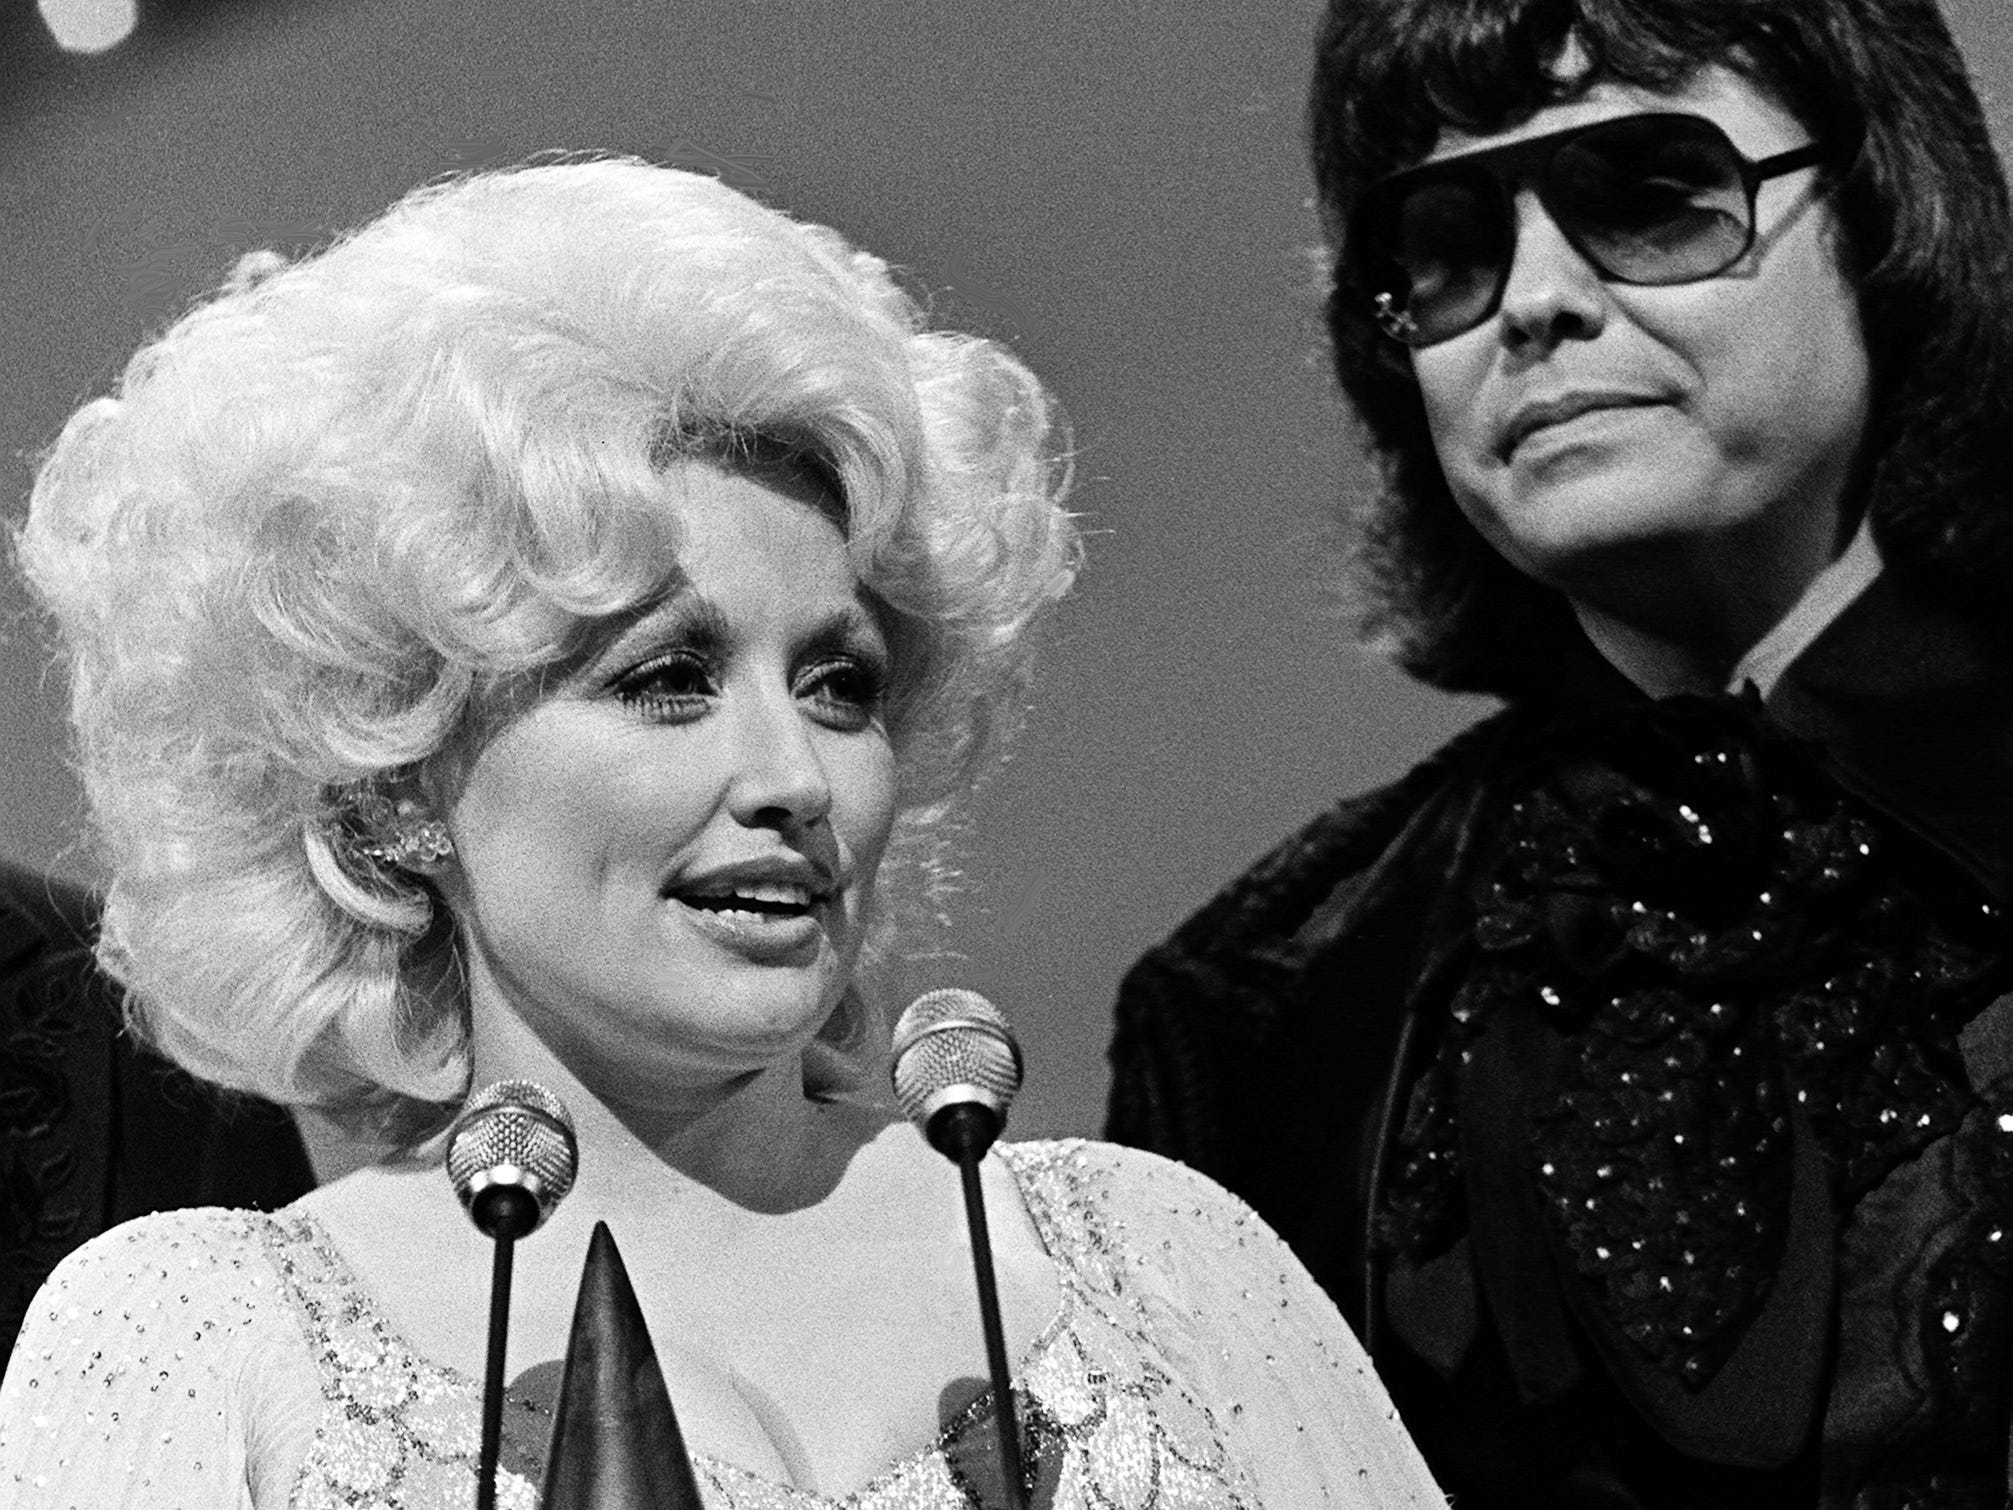 Dolly Parton speaks after winning the Entertainer of the Year award during the 12th annual CMA Awards show at the Grand Ole Opry House on Oct. 9, 1978. Standing by is presenter Ronnie Milsap.